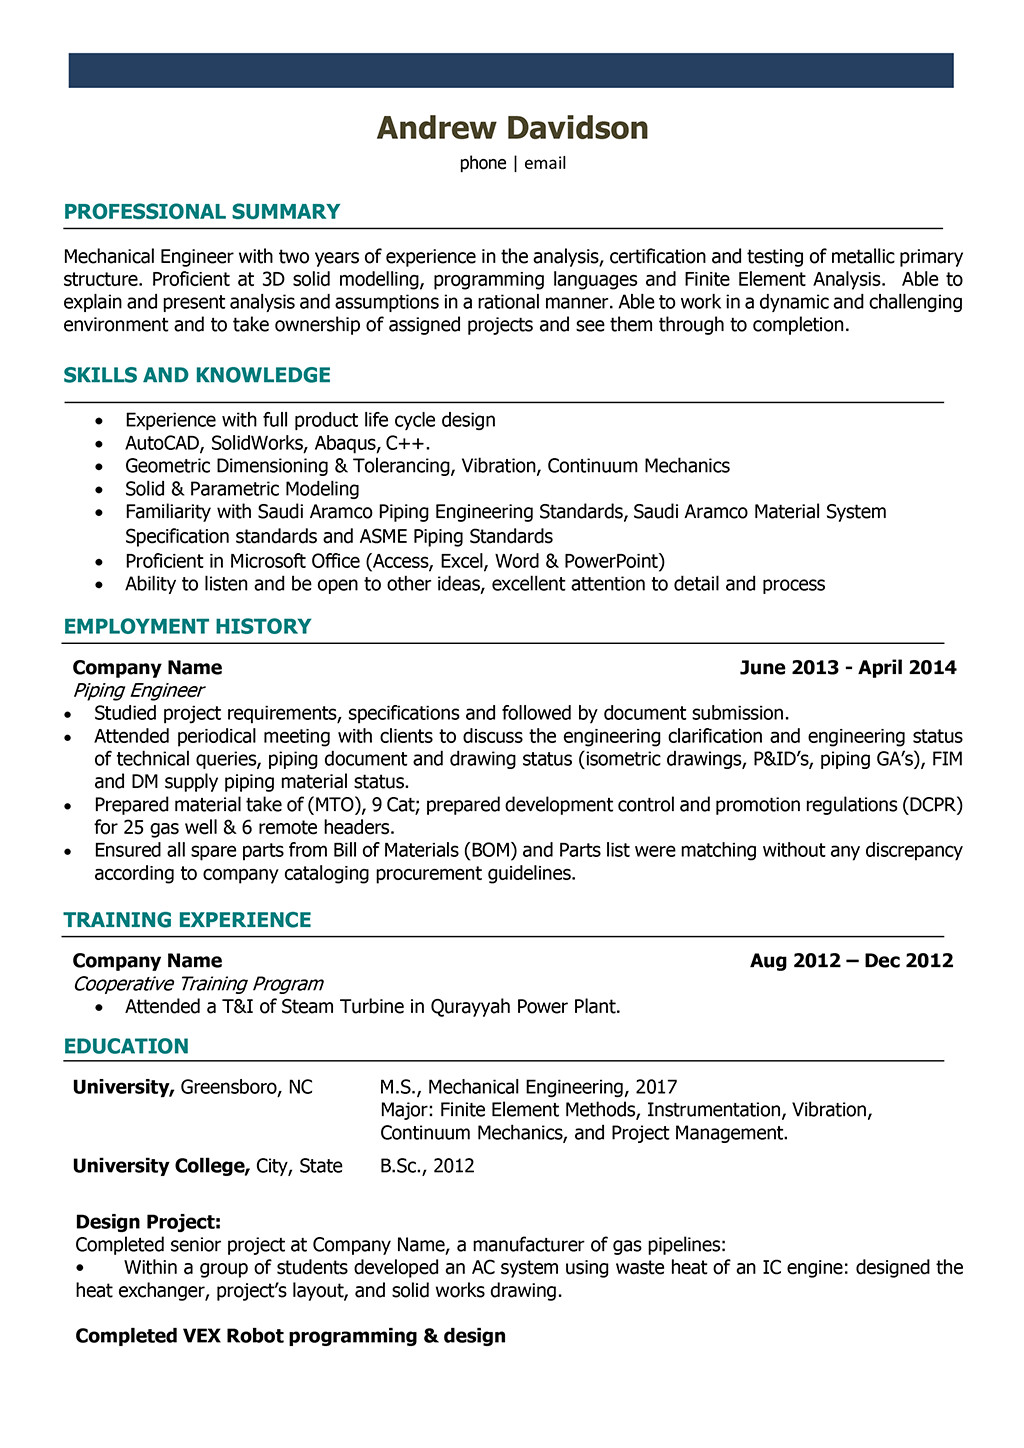 Mechanical Engineer Resume Template Mechanical Engineer Resume Samples and Writing Guide [10